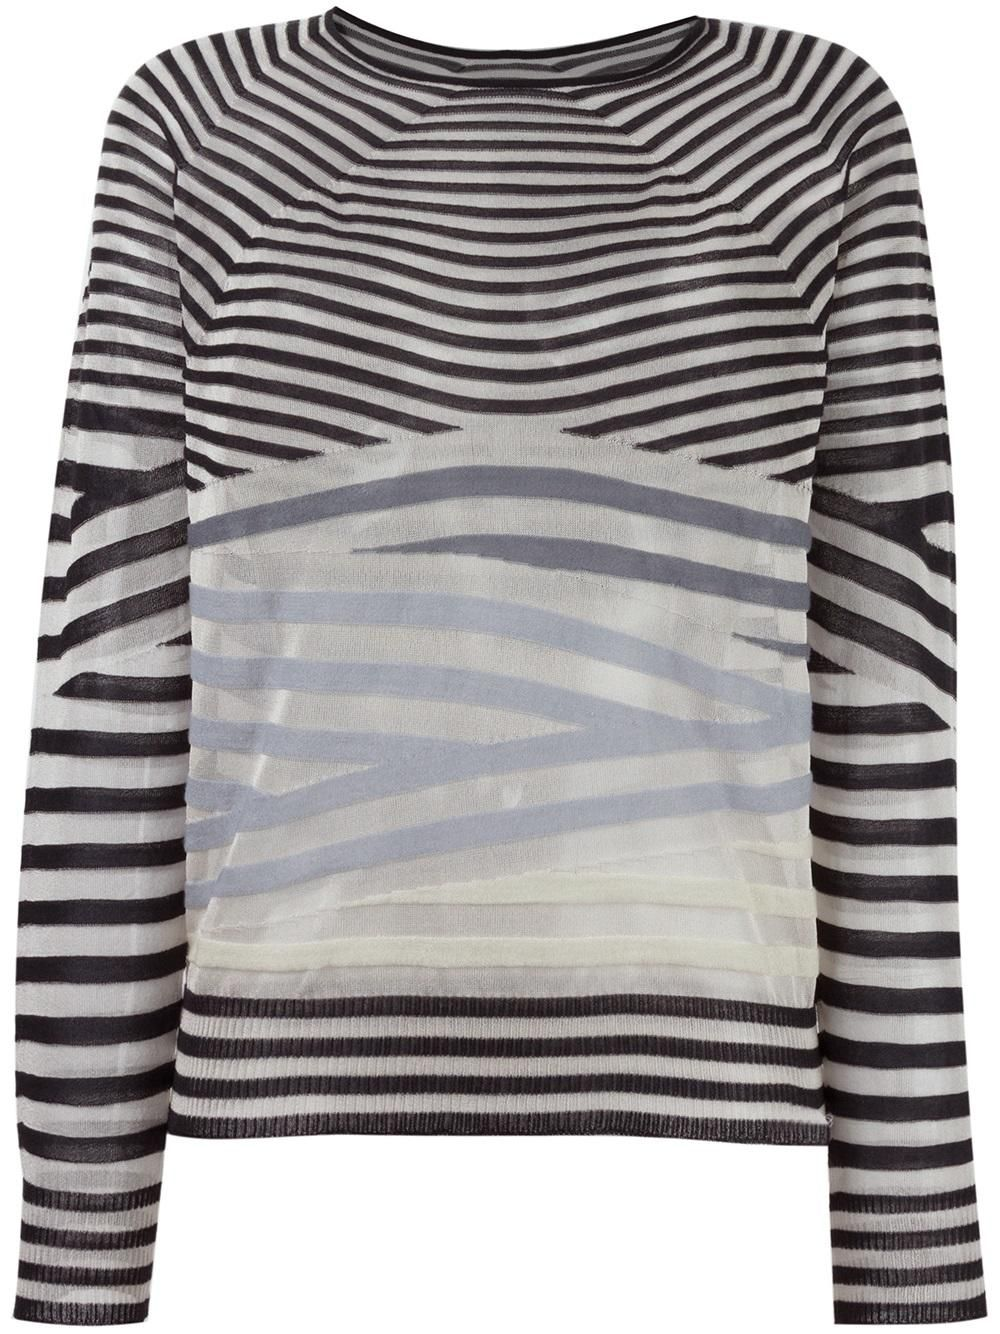 Outlet Ebay New For Sale striped knitted top - Black Giorgio Armani Cheap Sale Really I0Pk8o